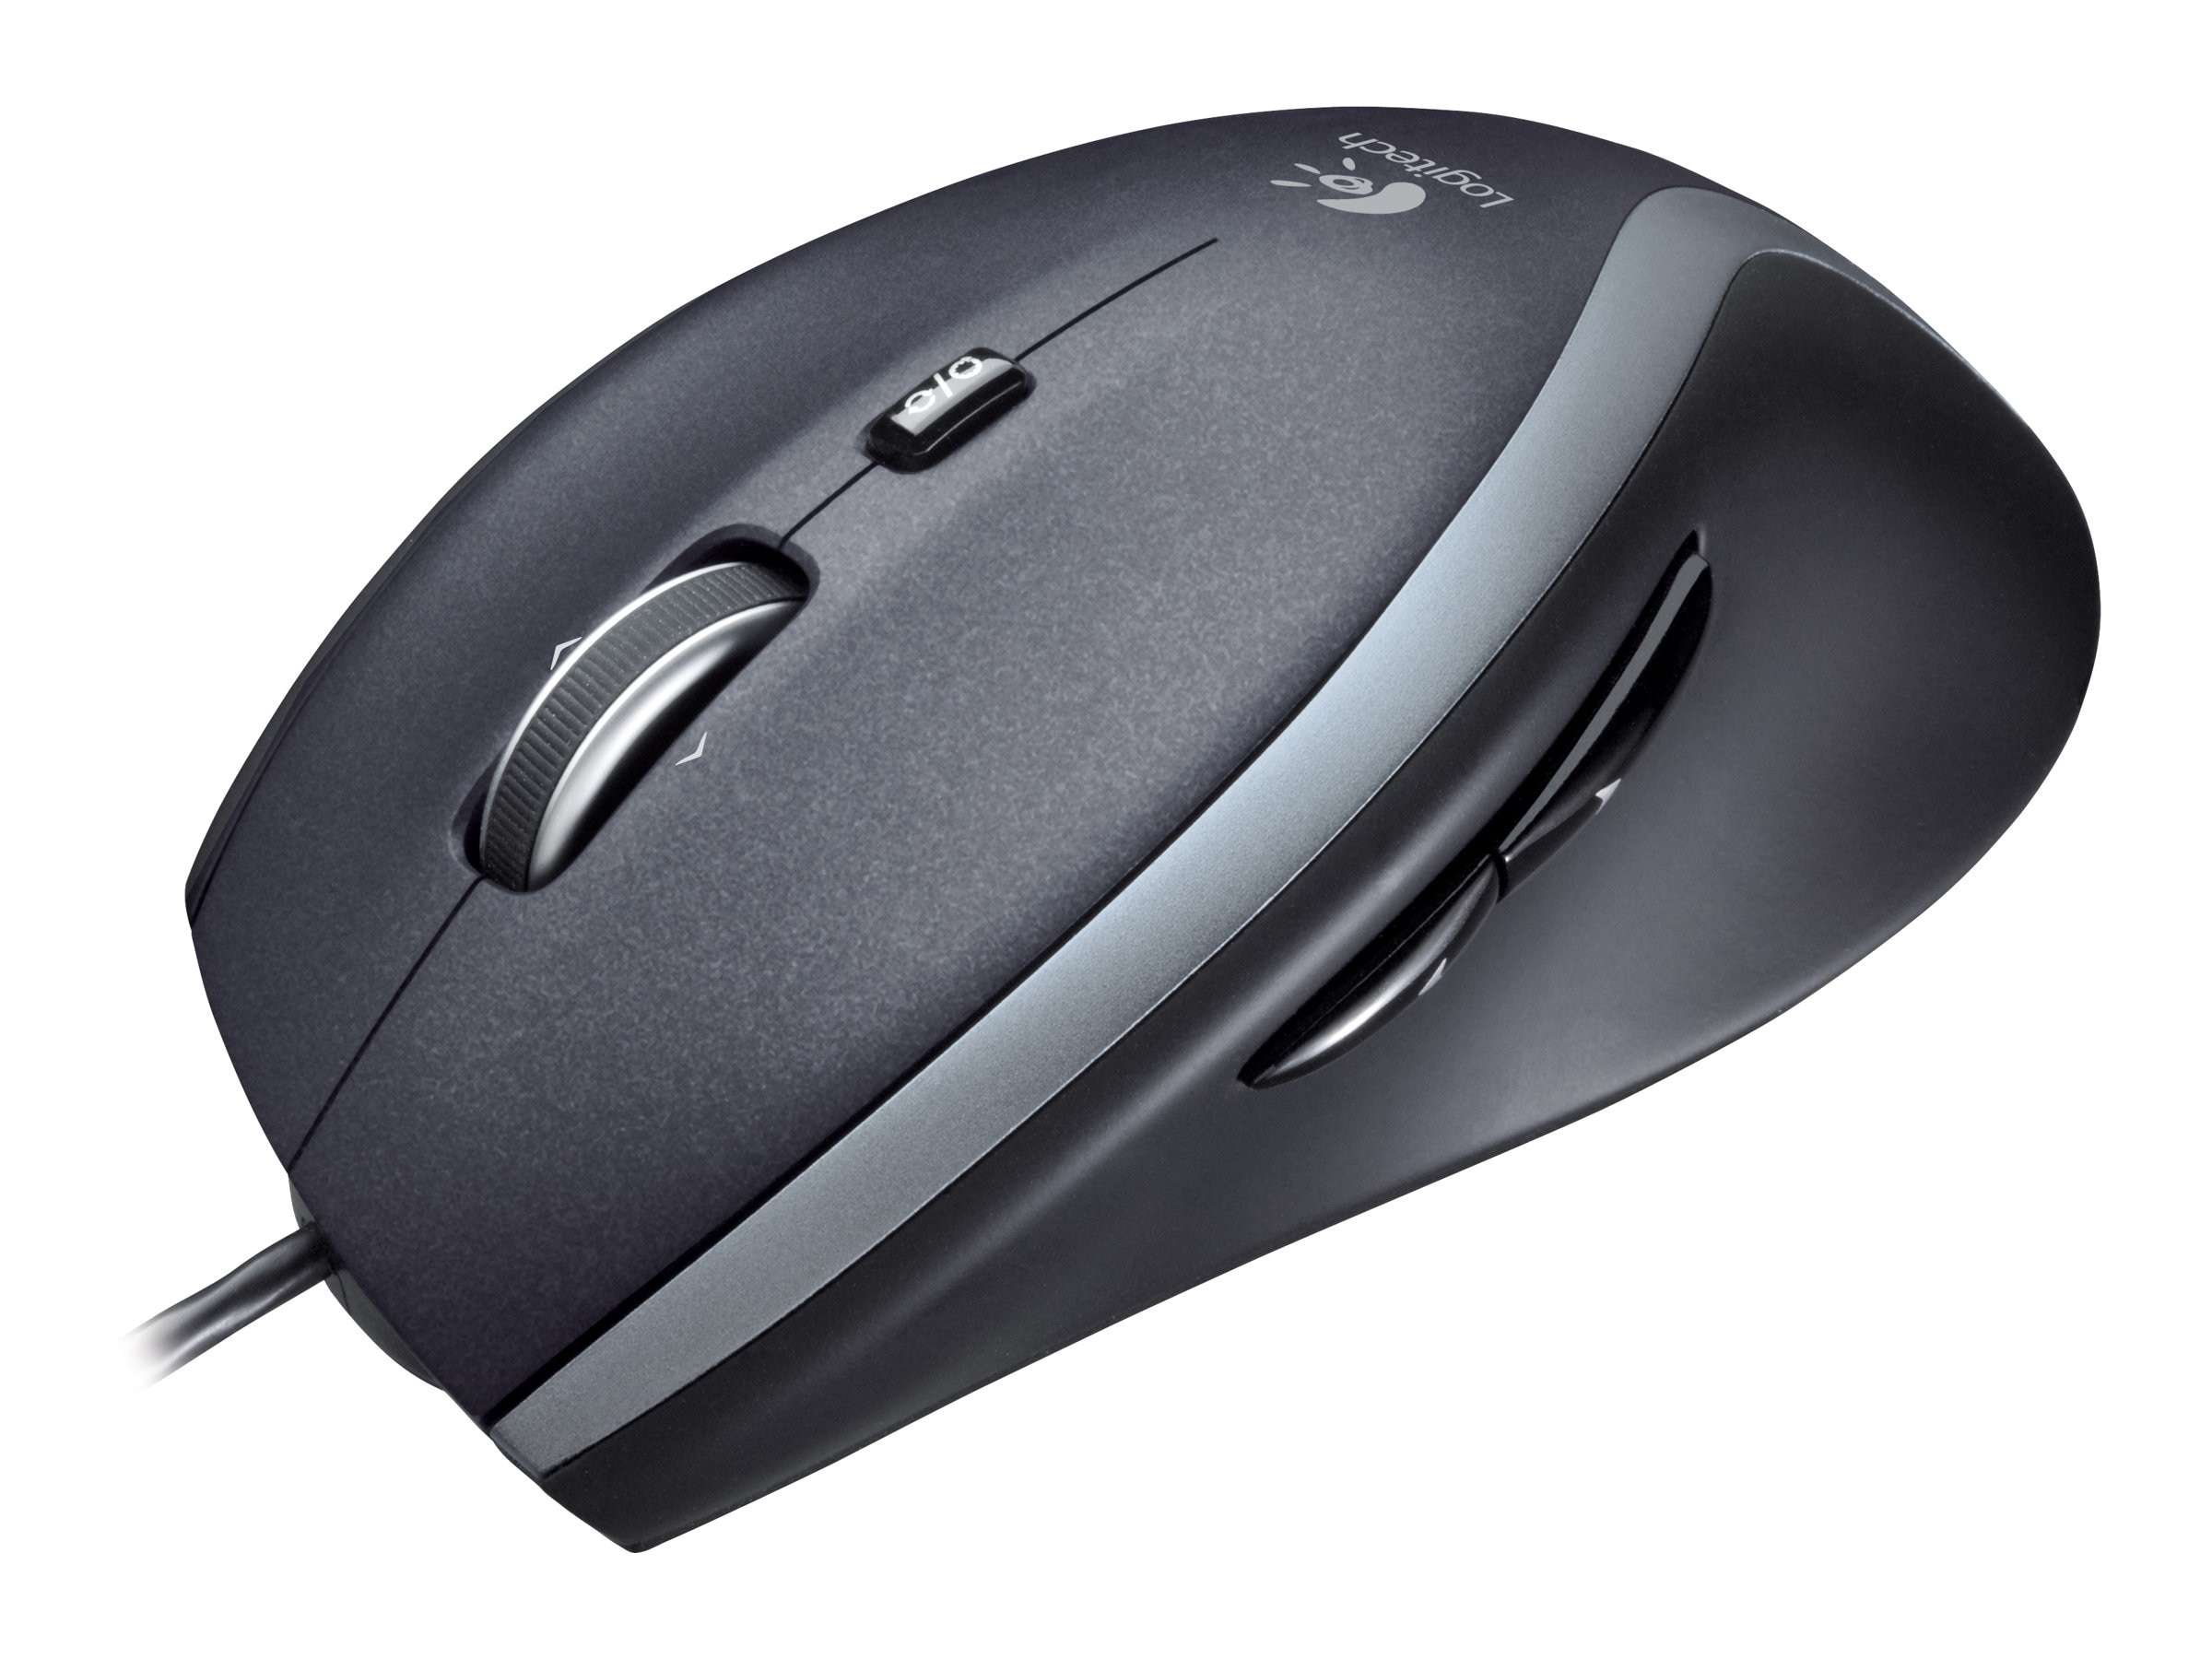 Logitech Corded, Fast-Scrolling Mouse M500, 910-001204, 9883989, Mice & Cursor Control Devices